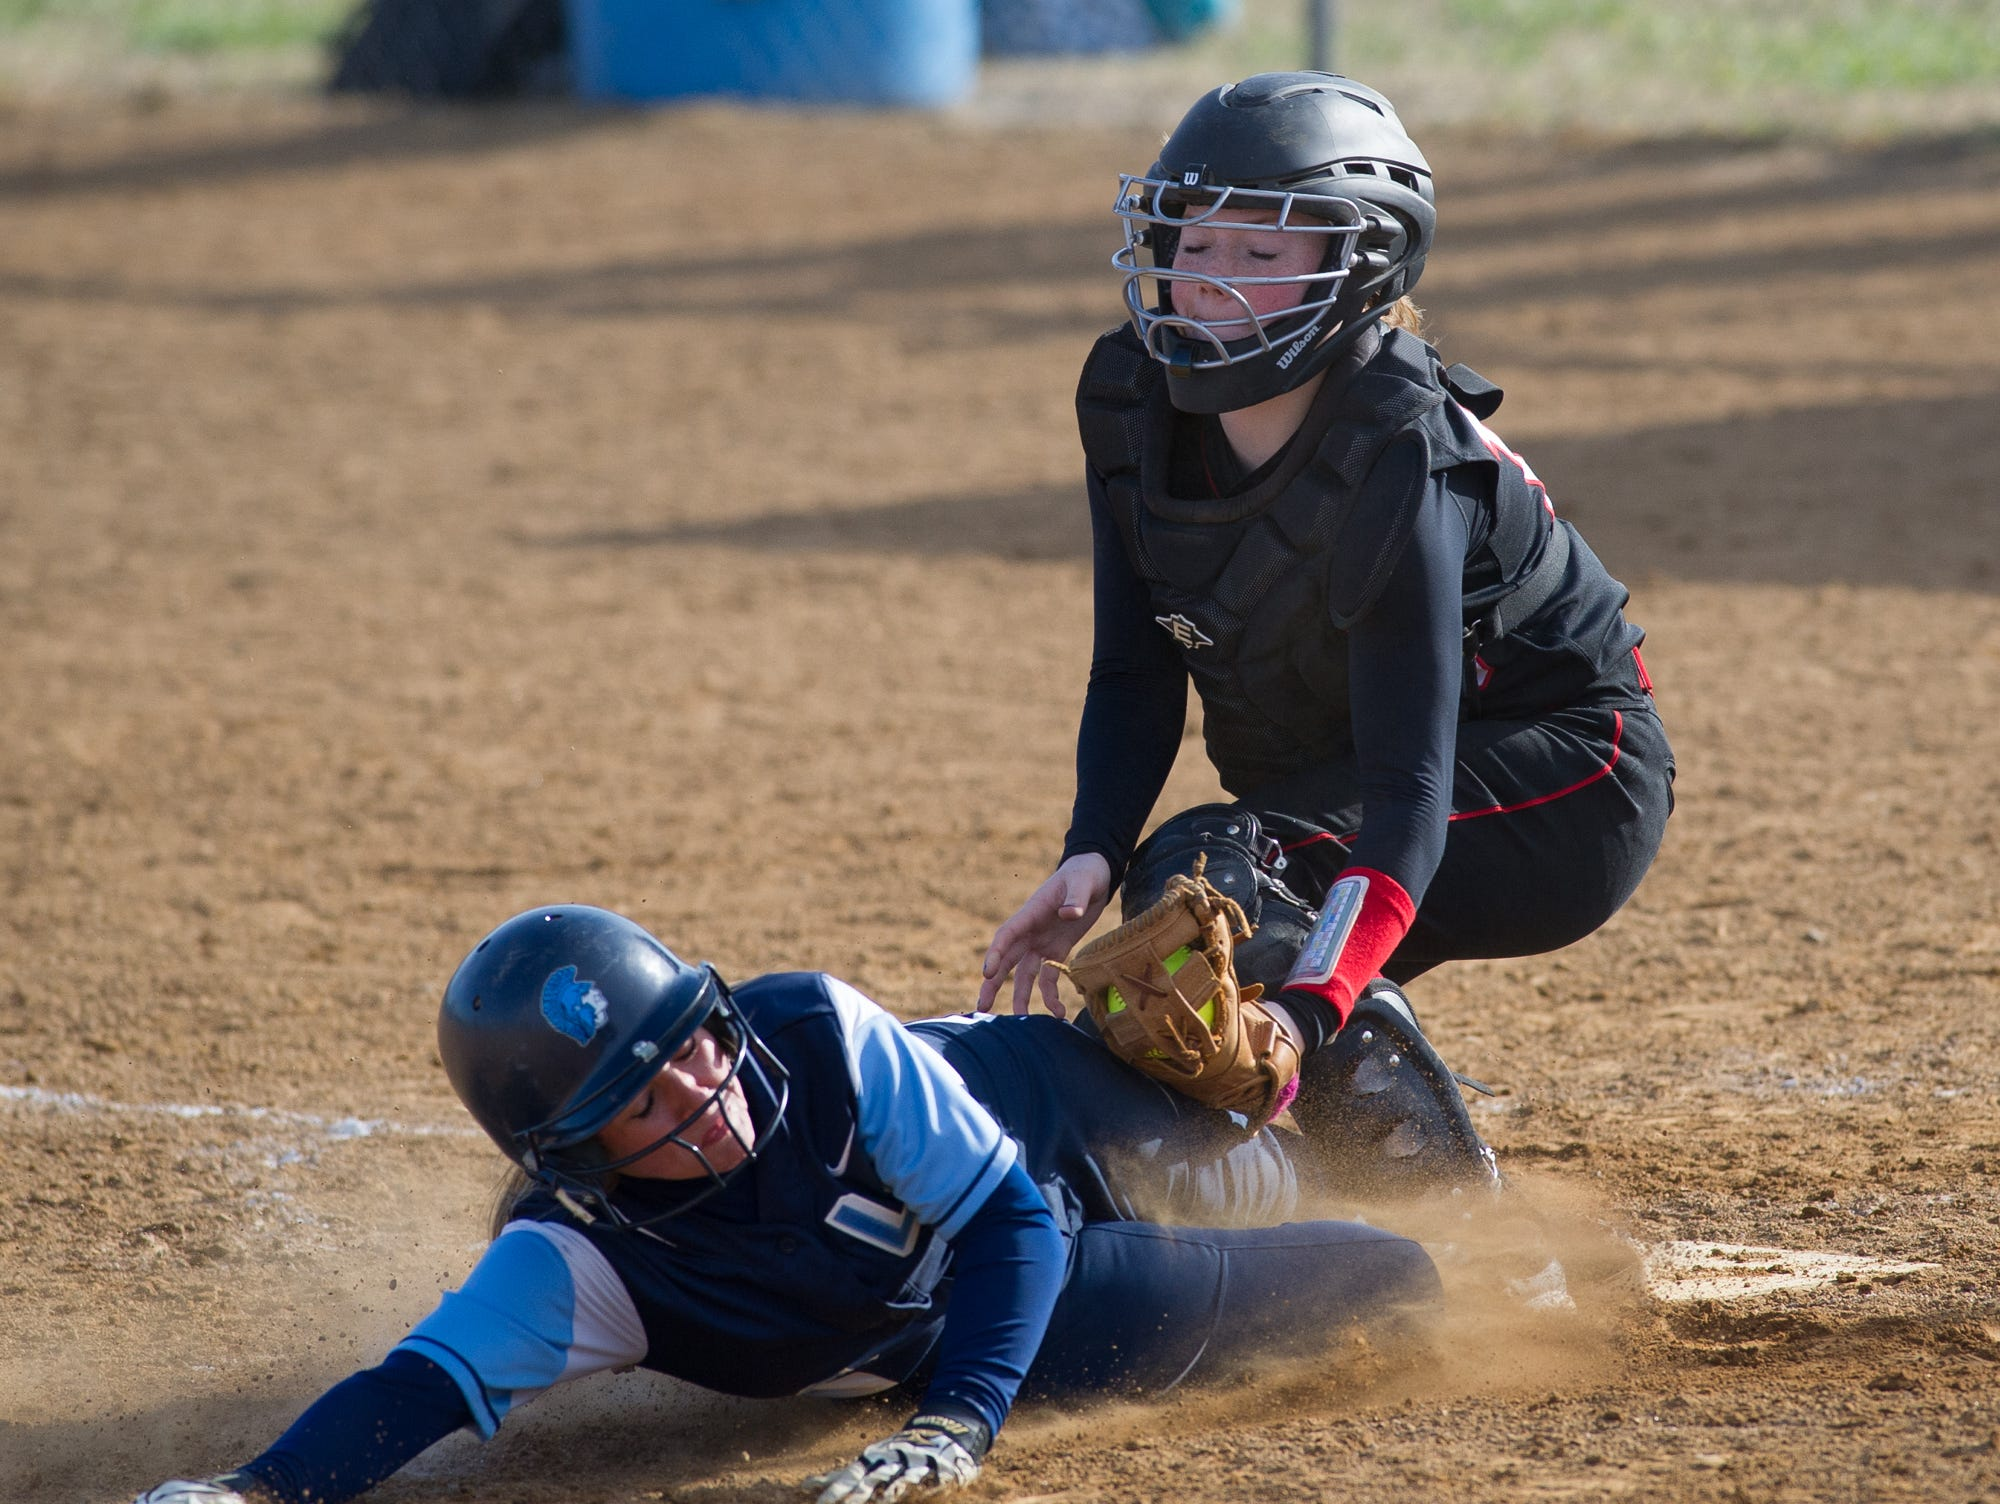 Lake Forest's Brittany Baker (3) is tagged out at home plate by Red Lion's Madelyn Beres (18).